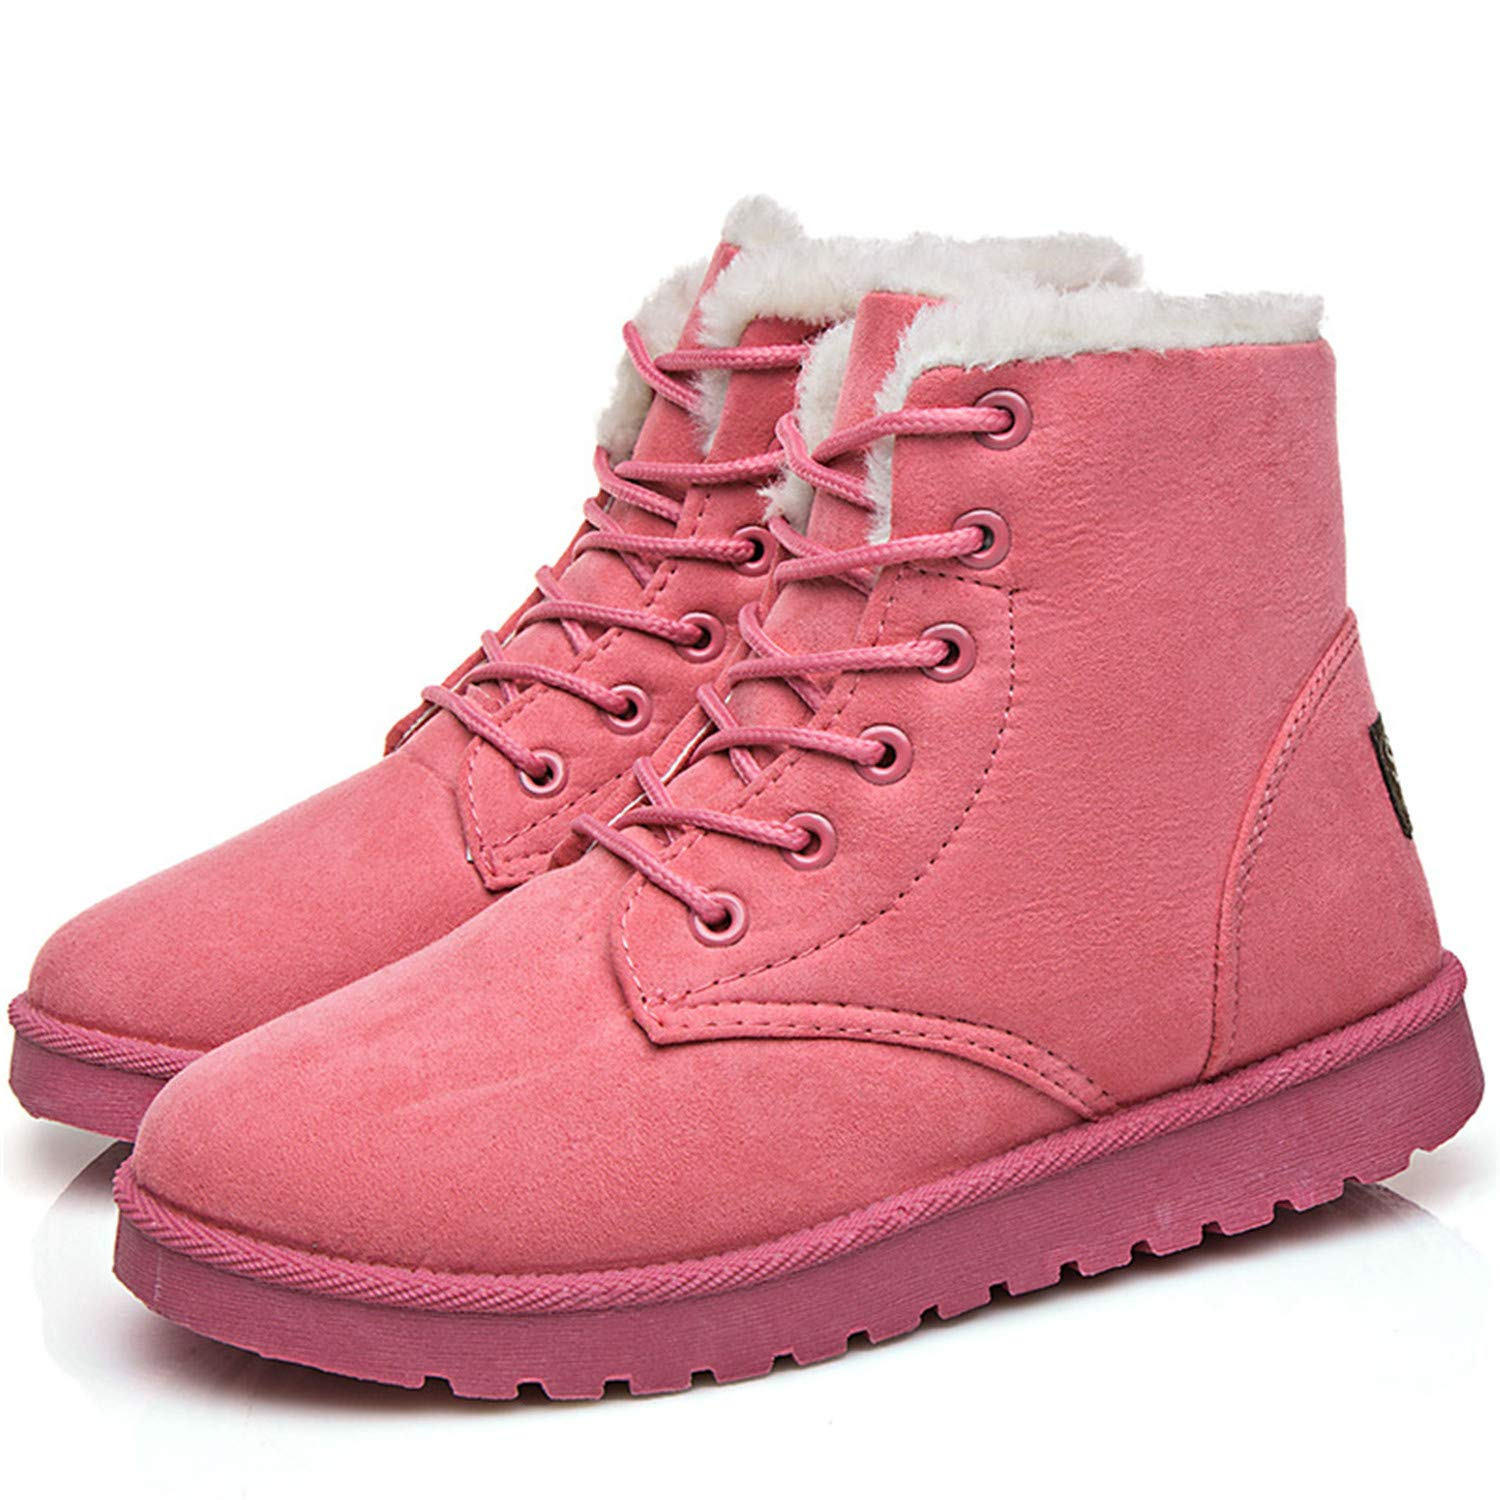 Amazon.com | Ankle Boots for Women Female Fur Lace Up Fenty Platform Snow Boots Suede Plush Sewing Botas | Boots